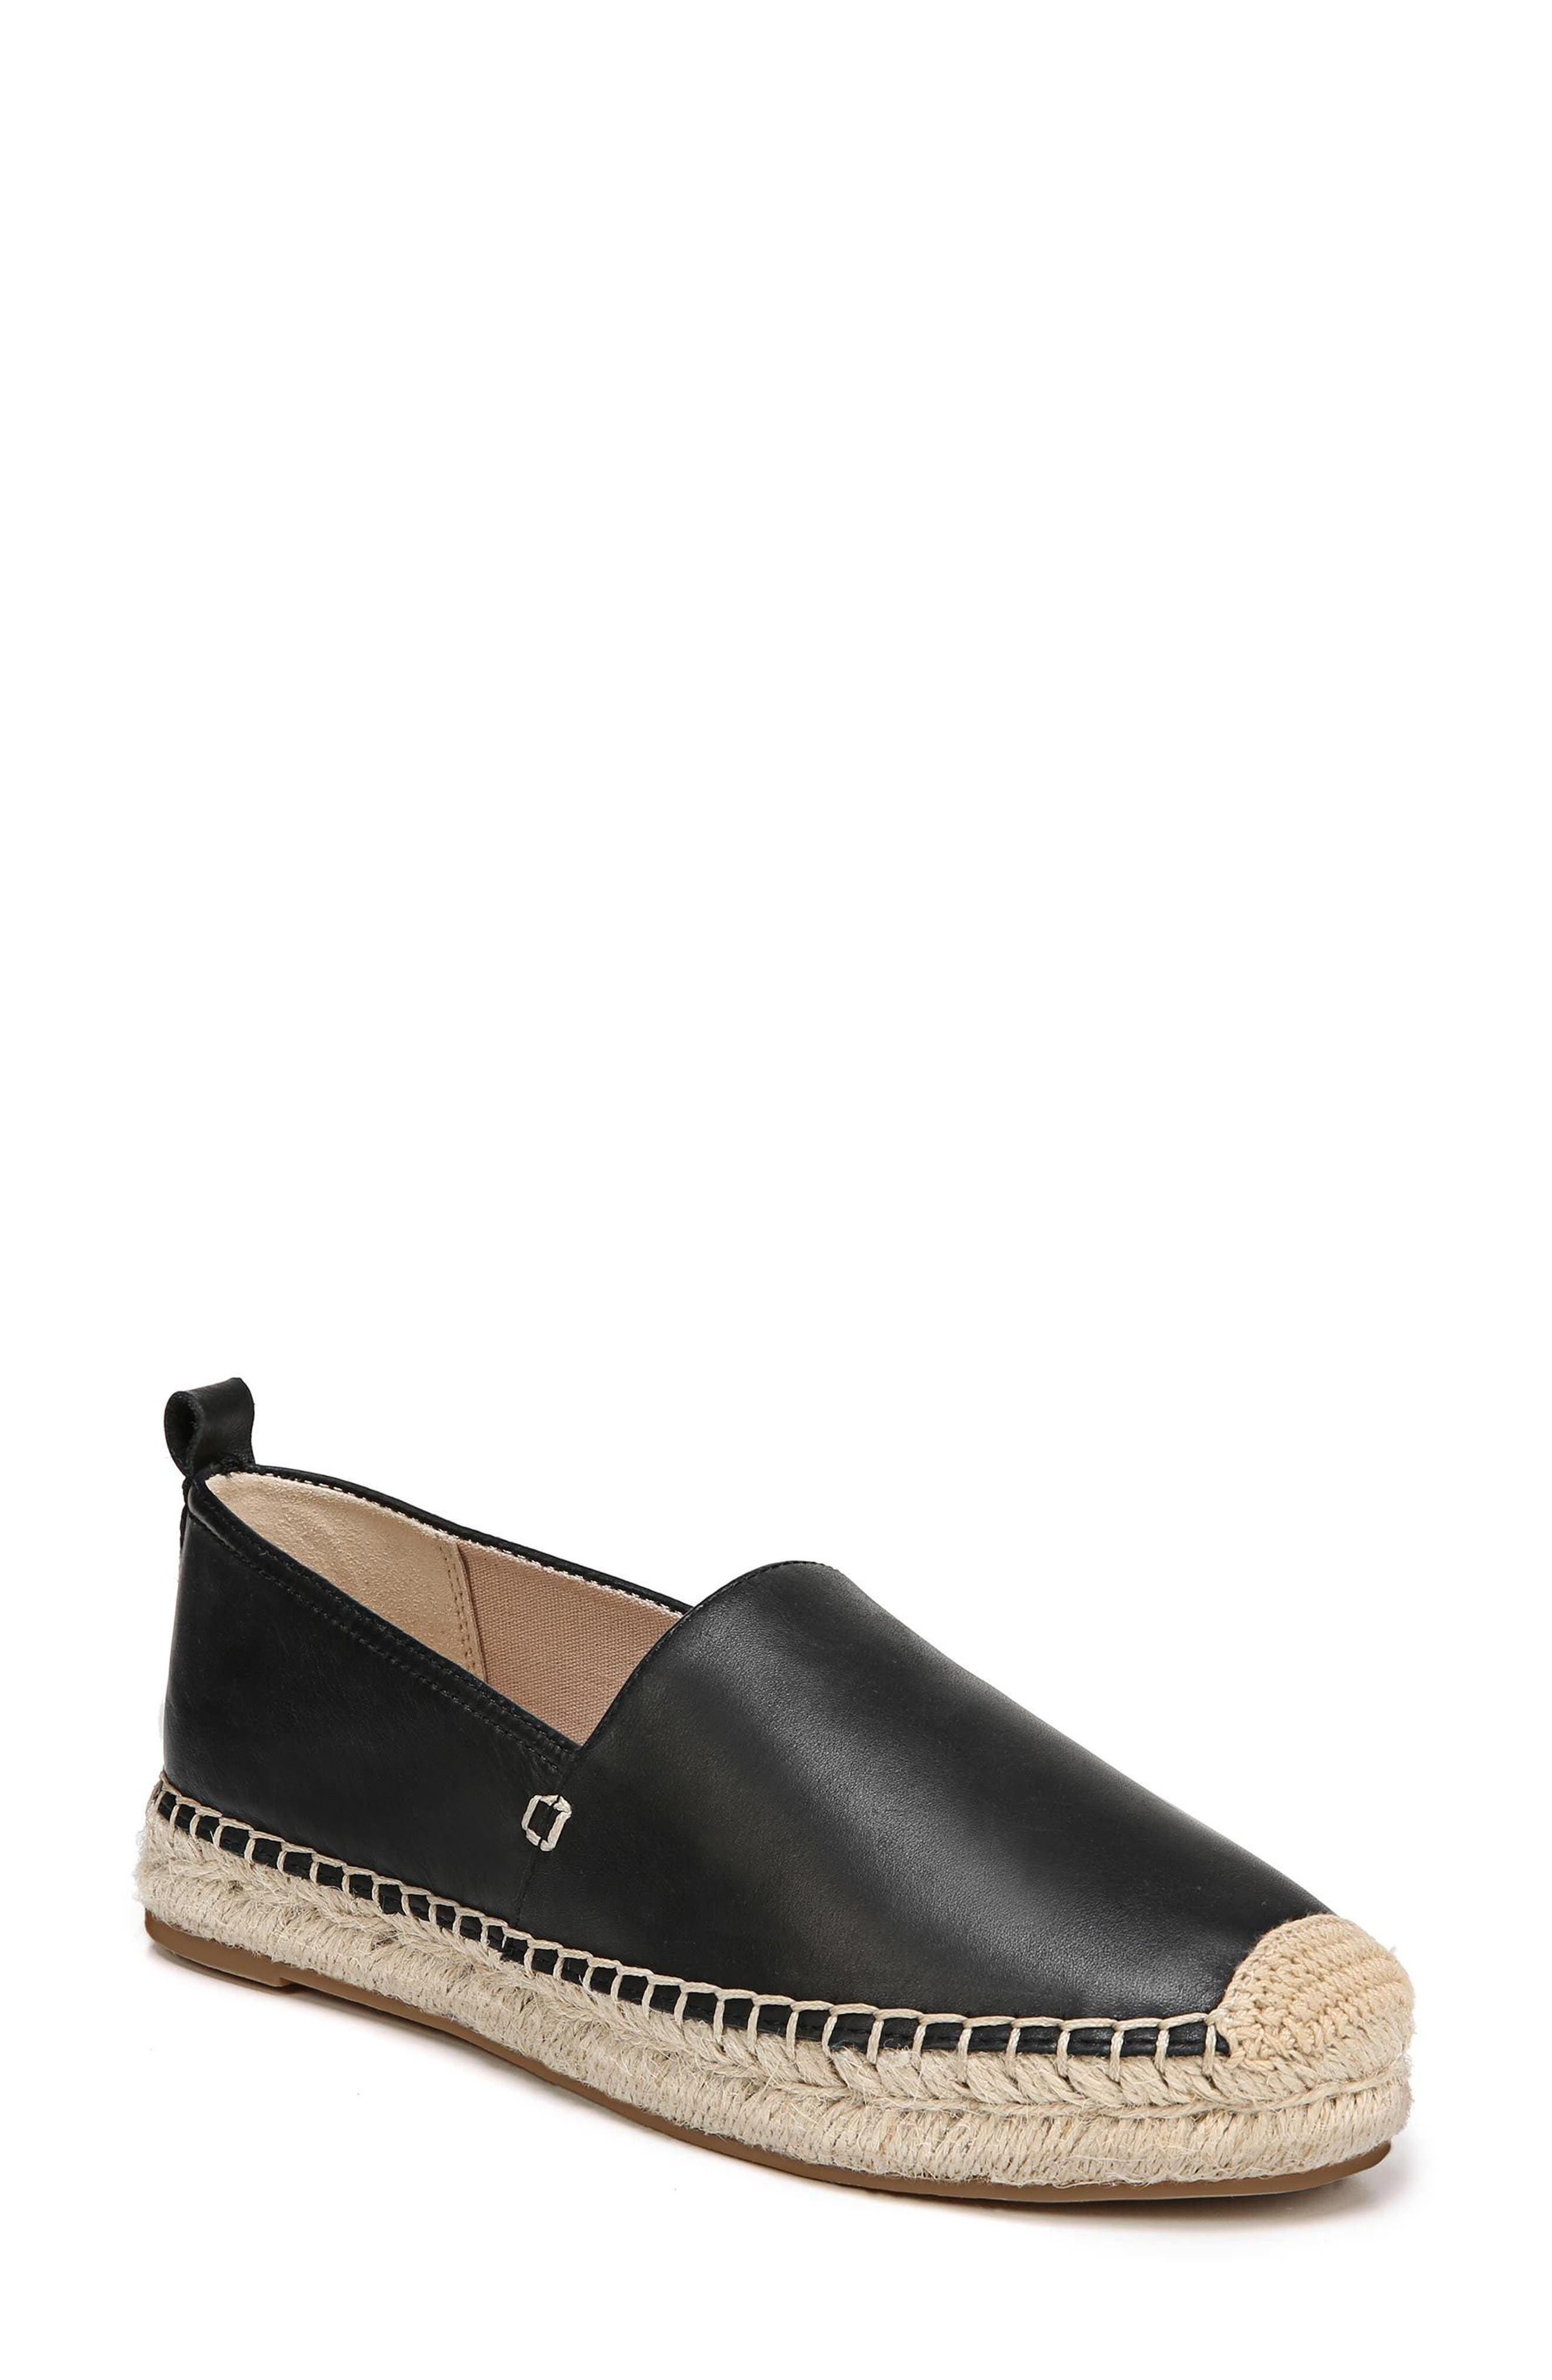 SAM EDELMAN, Khloe Espadrille Flat, Main thumbnail 1, color, BLACK LEATHER